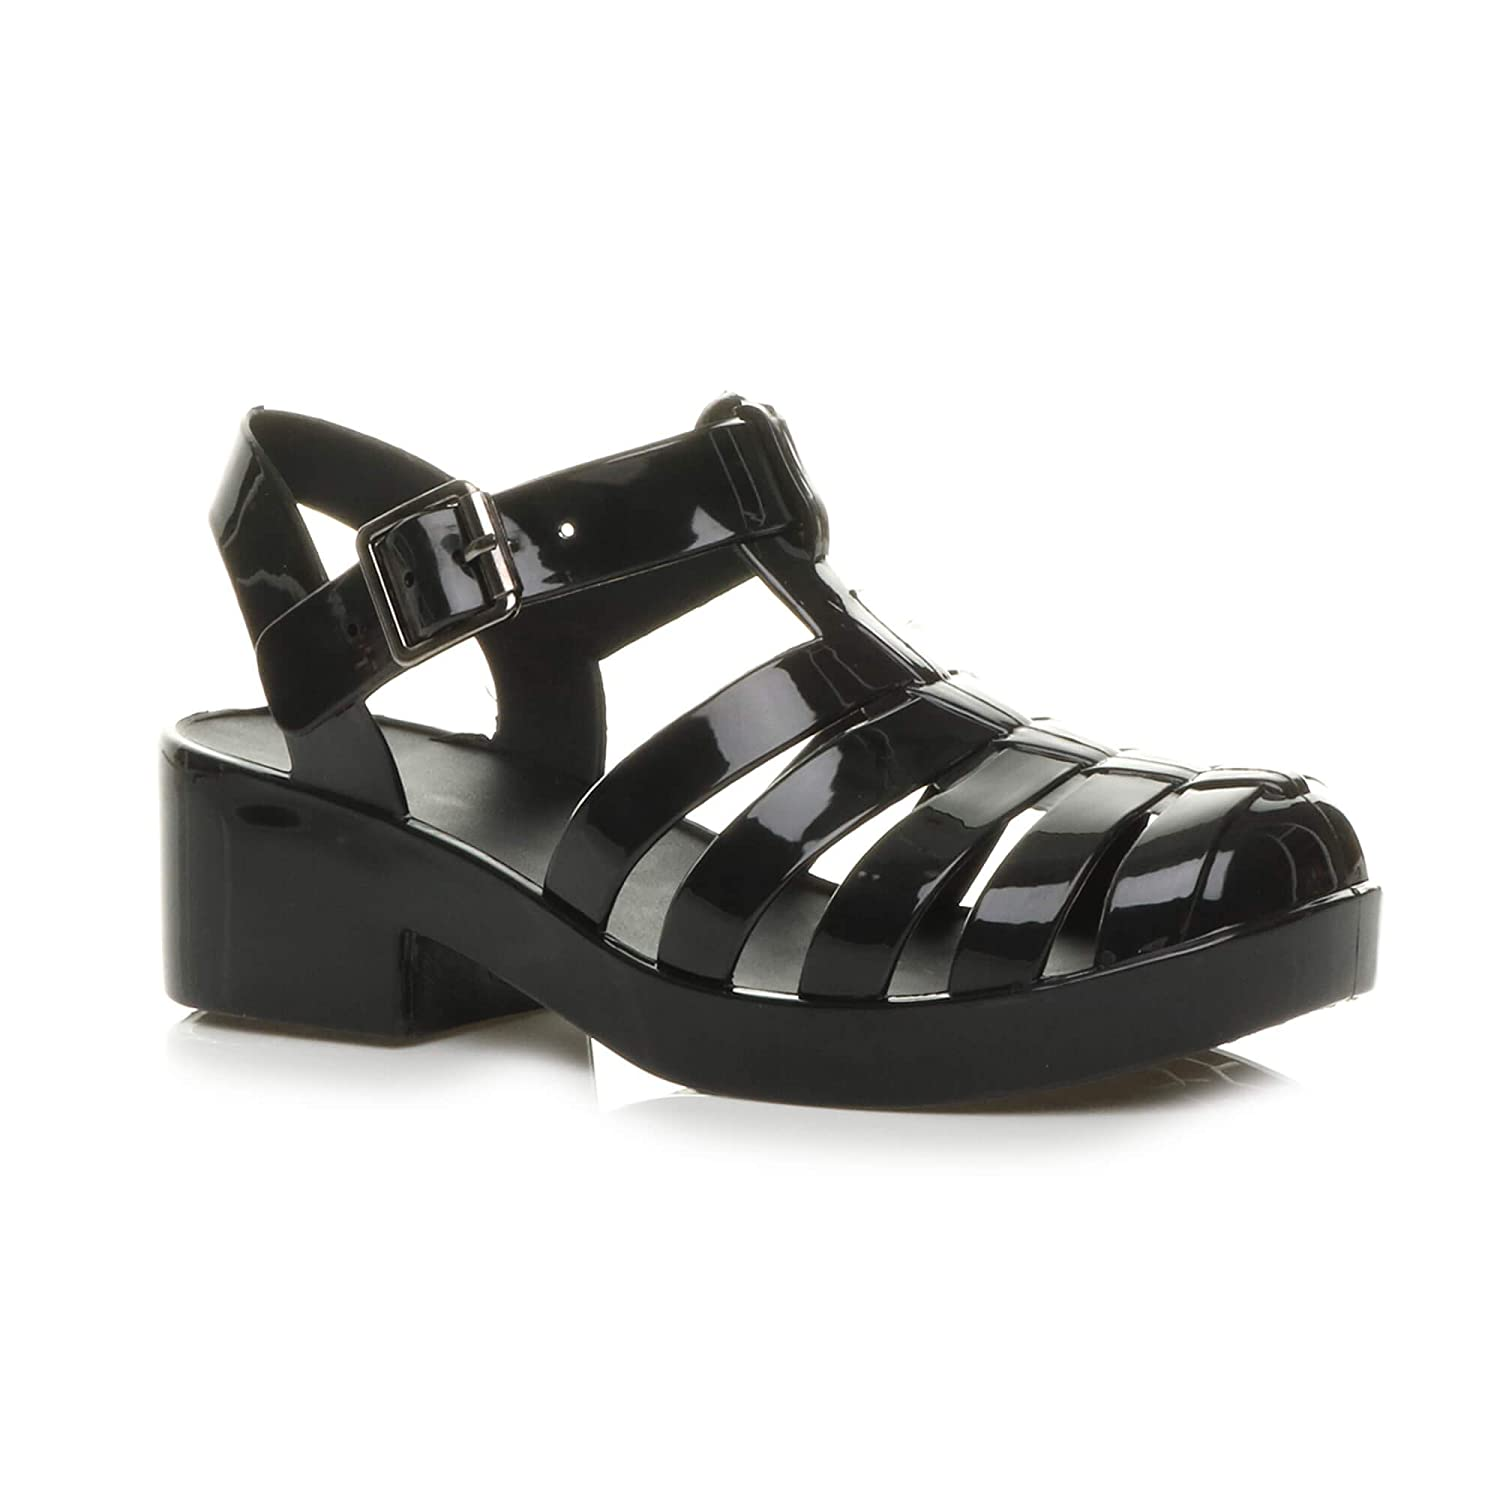 LADIES WOMEN CASUAL FLAT BUCKLE STRAP WORK//SCHOOL  PUMP SHOES SIZE 3-8